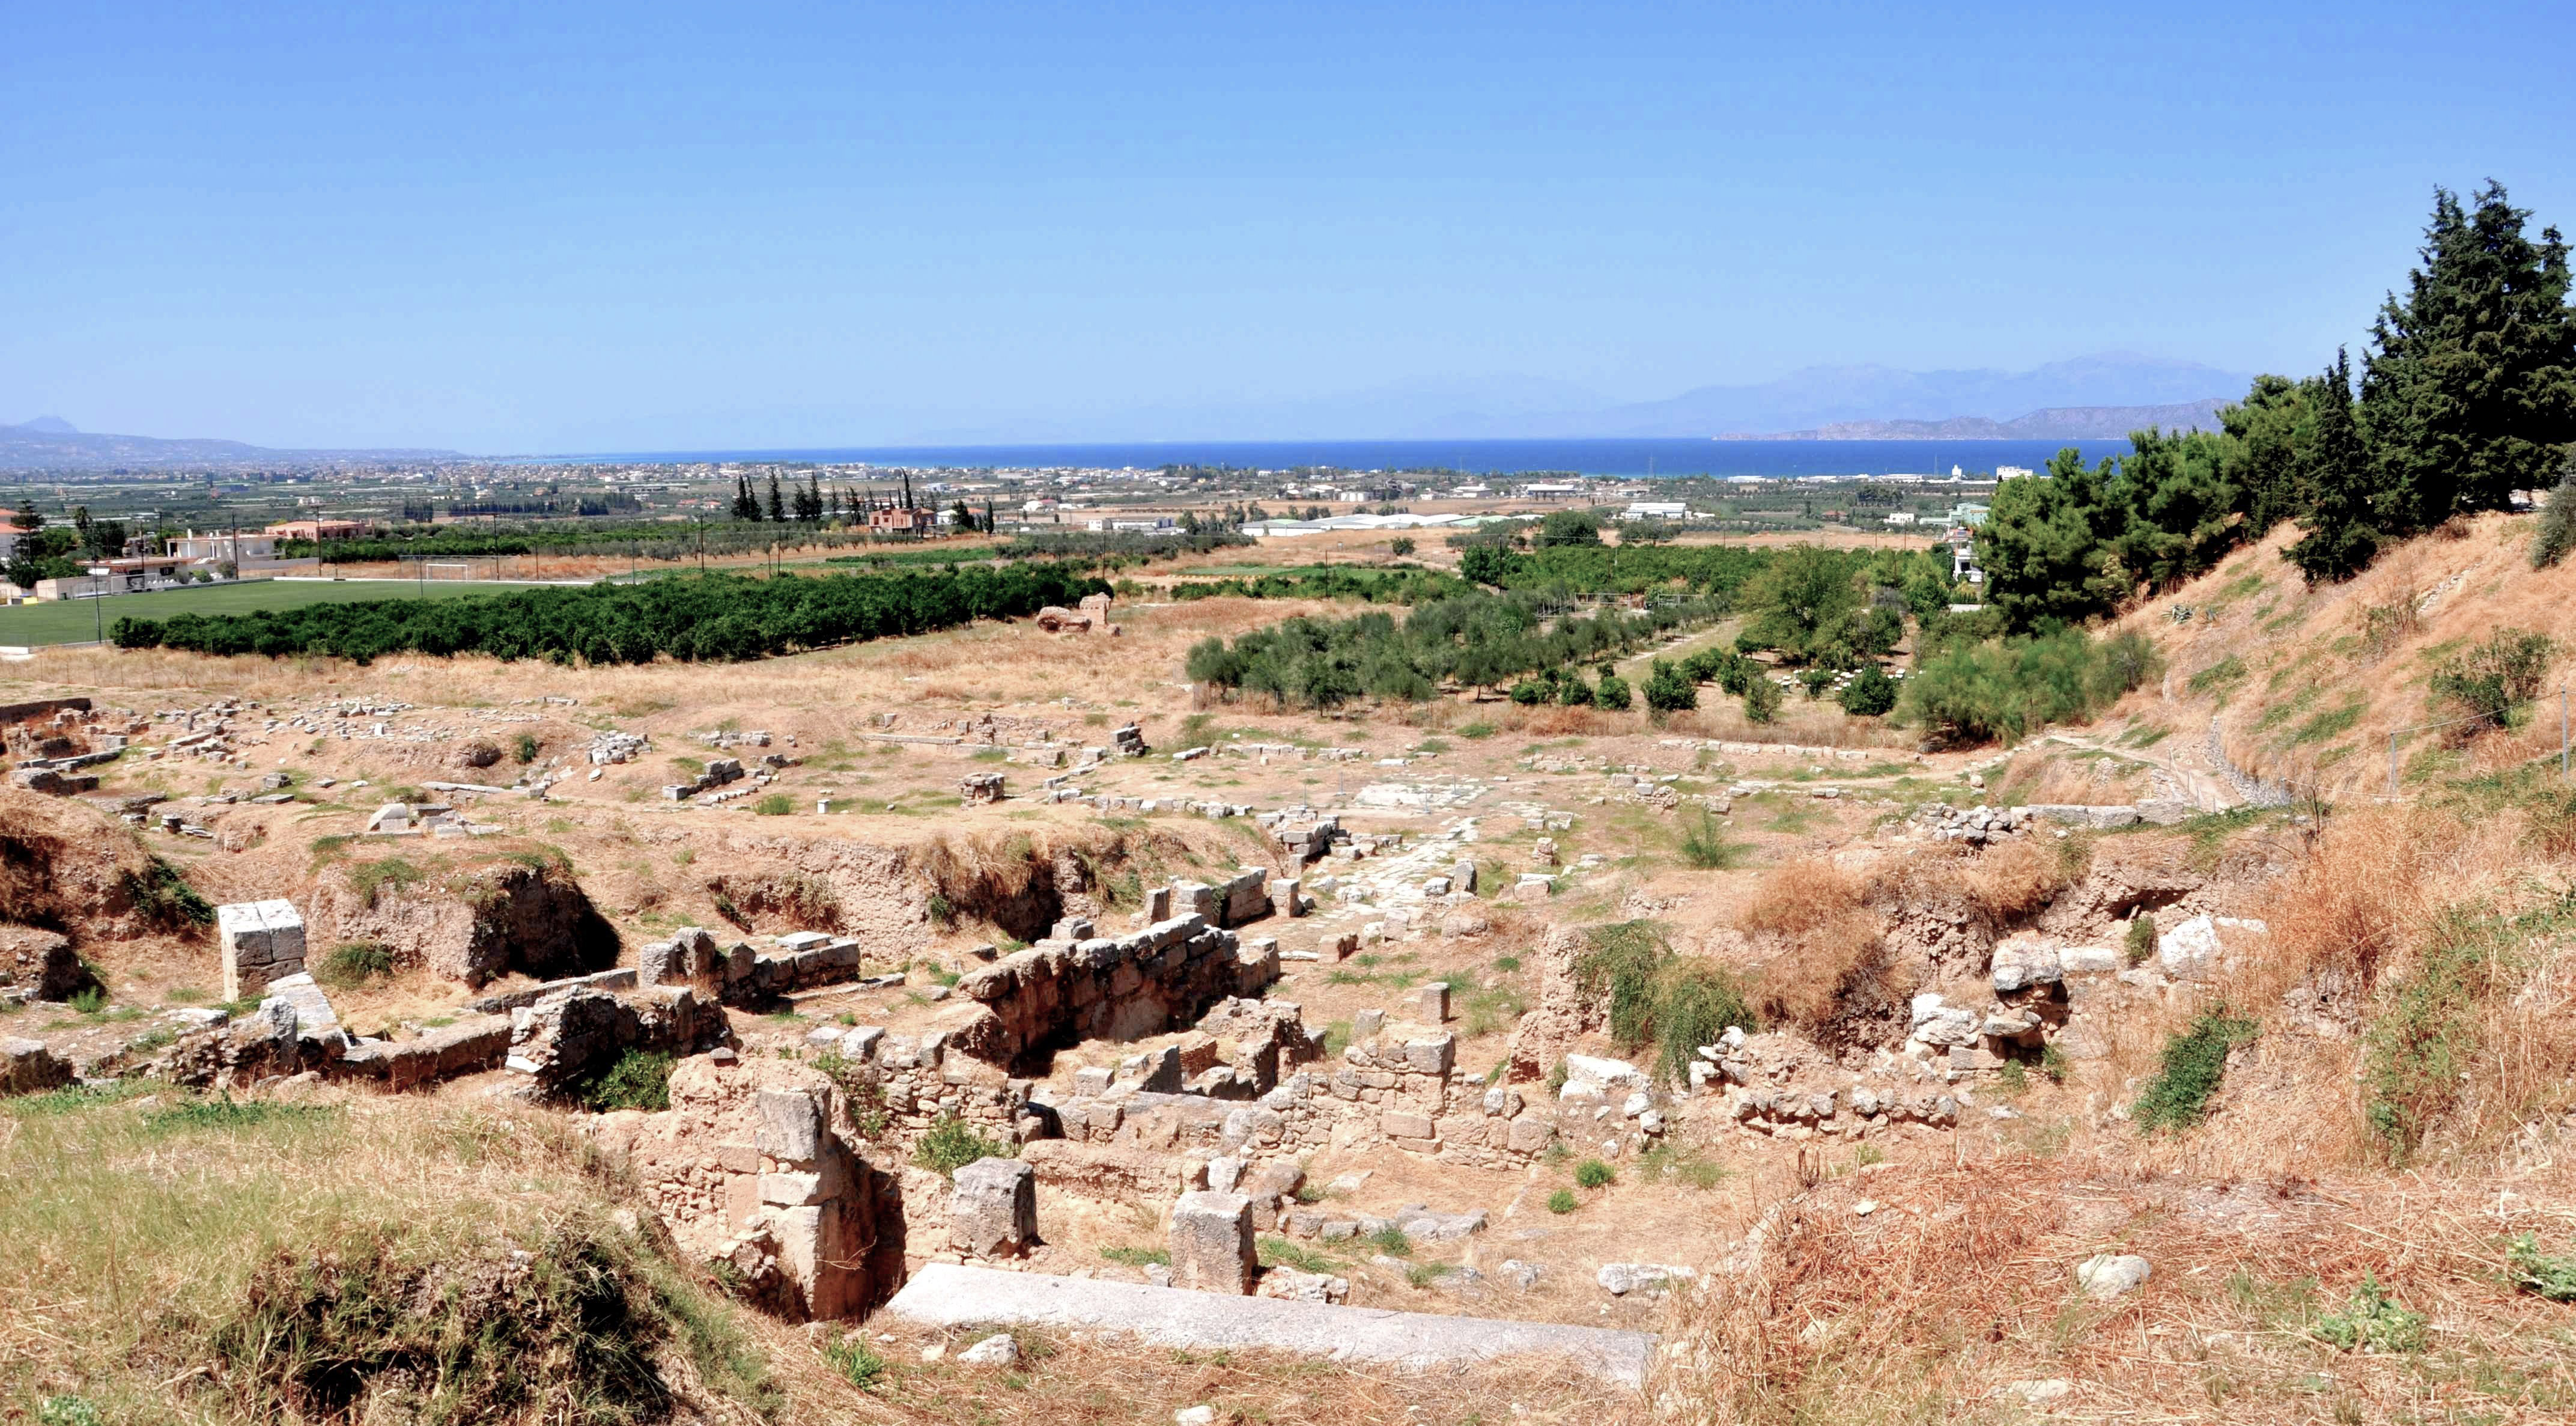 https://upload.wikimedia.org/wikipedia/commons/7/7f/Ancient_Theater_in_Archeological_site_of_Ancient_Corinth.jpg